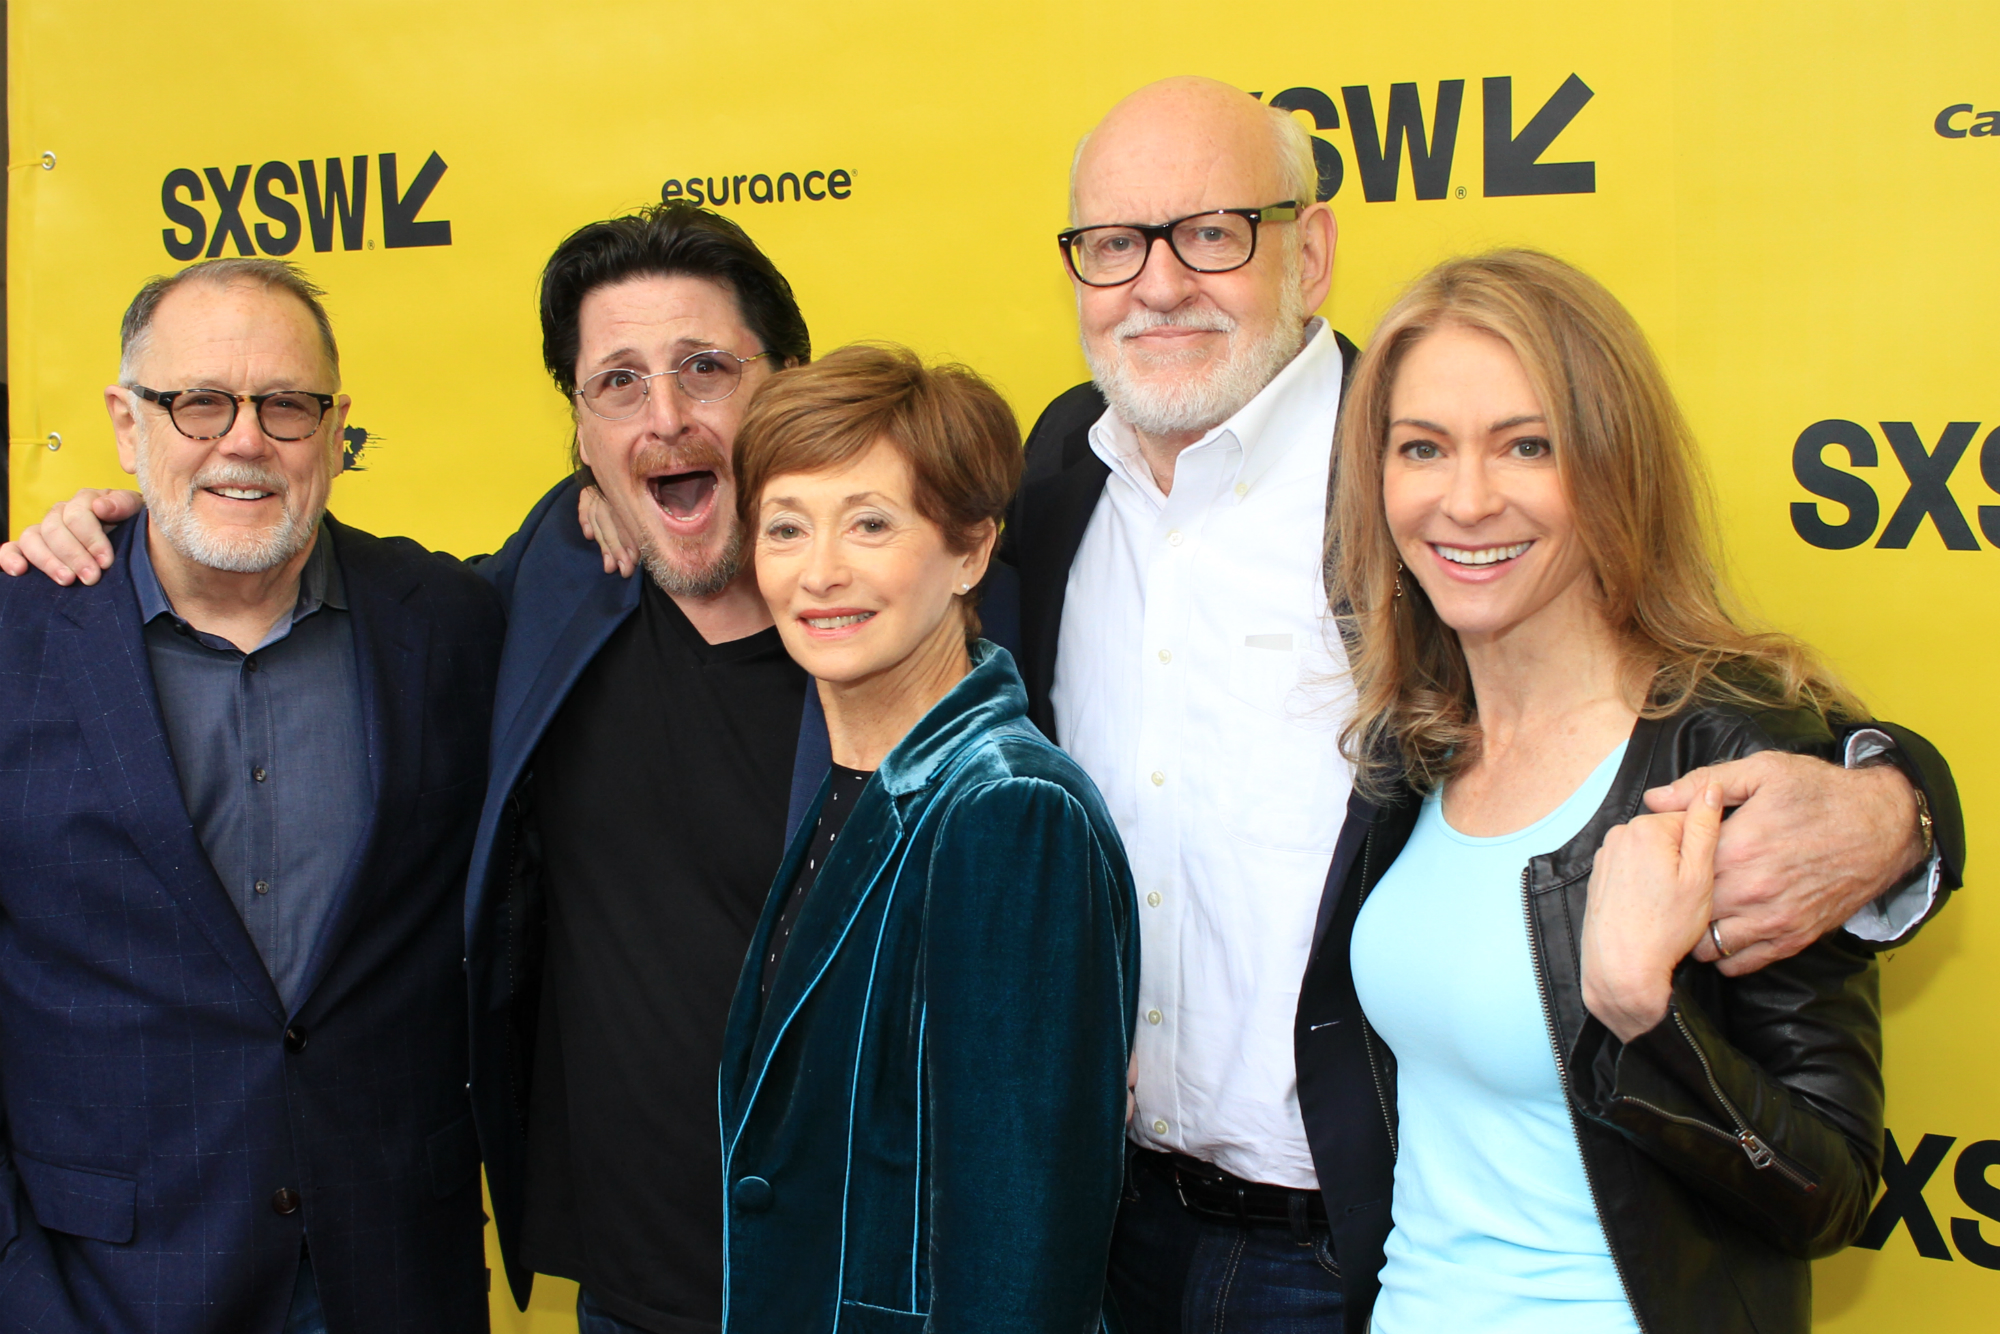 Dave Goelz, Bill Barretta, Fran Brill, Frank Oz, and Victoria Labalme // Muppet Guys Talking // Photo by Heather Kaplan